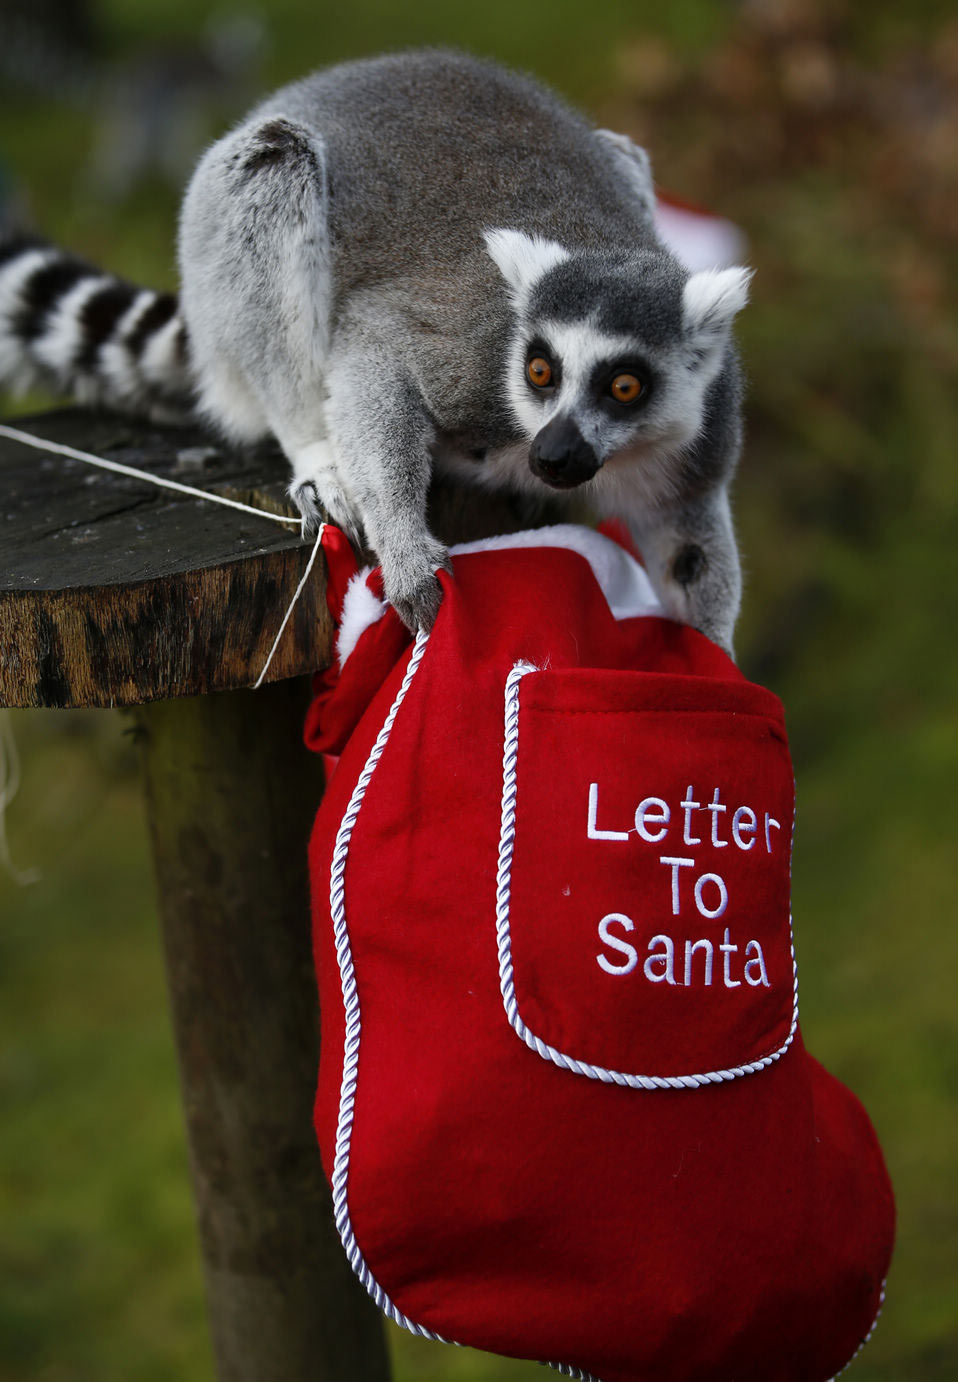 Animals Receive Christmas Treats At Zsl Whipsnade Zoo People S